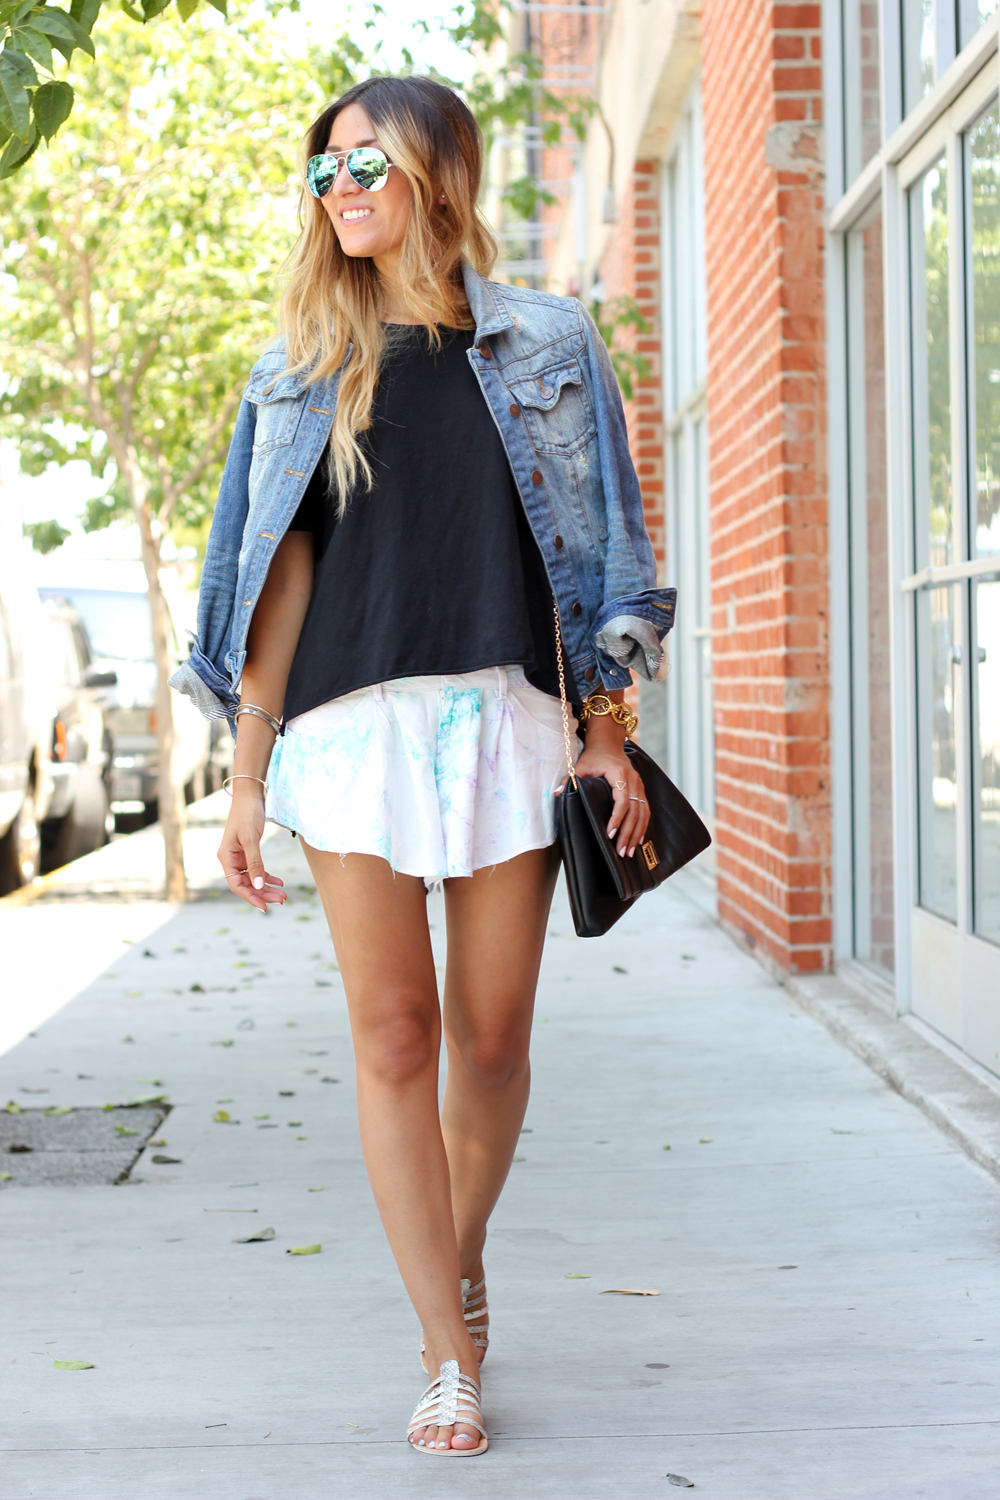 Daily Dose Flutter Shorts Ootd